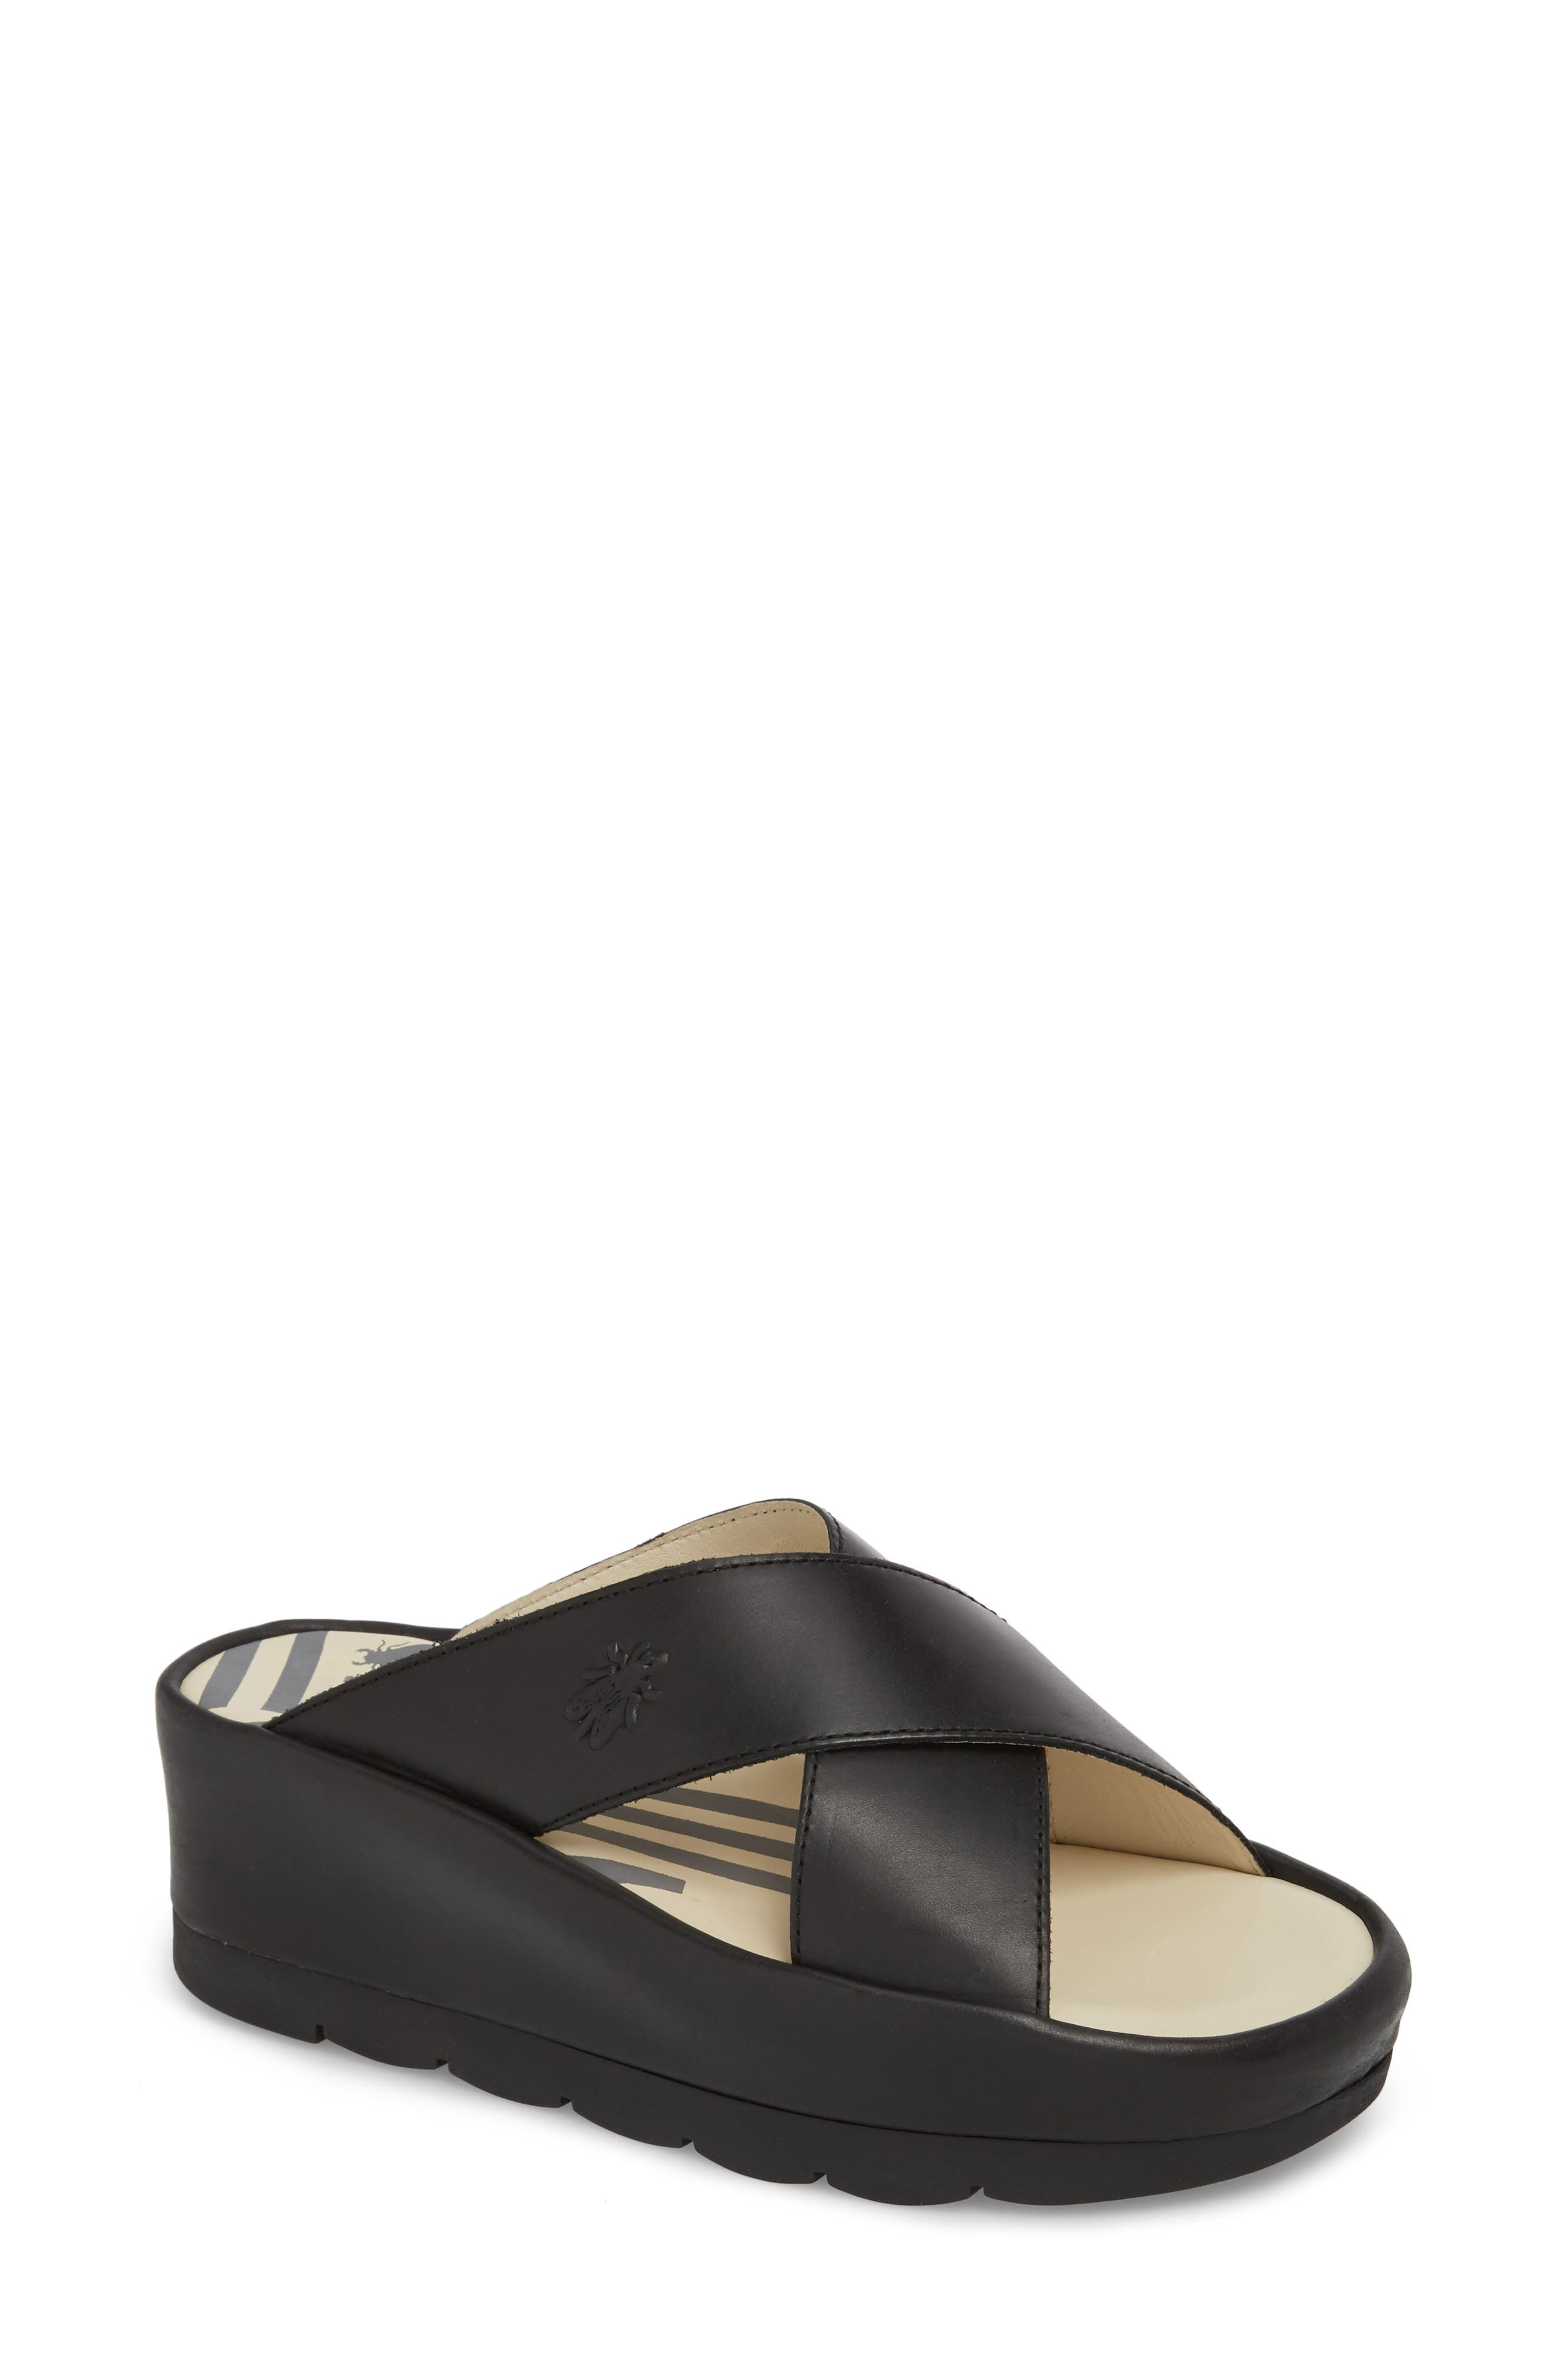 Begs Platform Slide Sandal,                         Main,                         color, BLACK RUG LEATHER